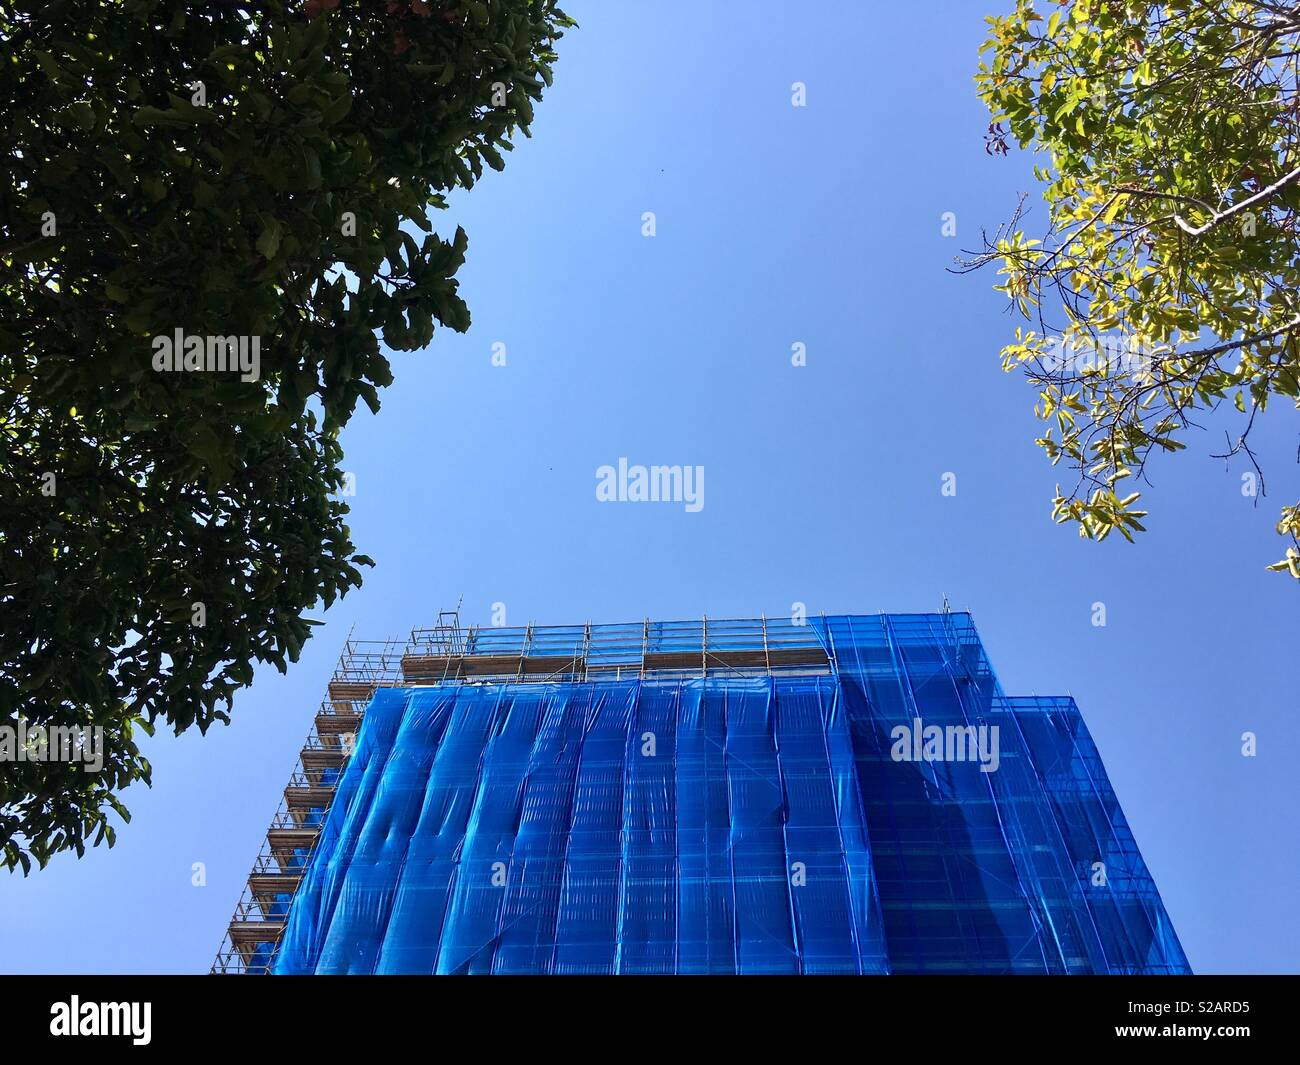 Building covered in blue scaffolding against a blue sky seen between two trees. - Stock Image